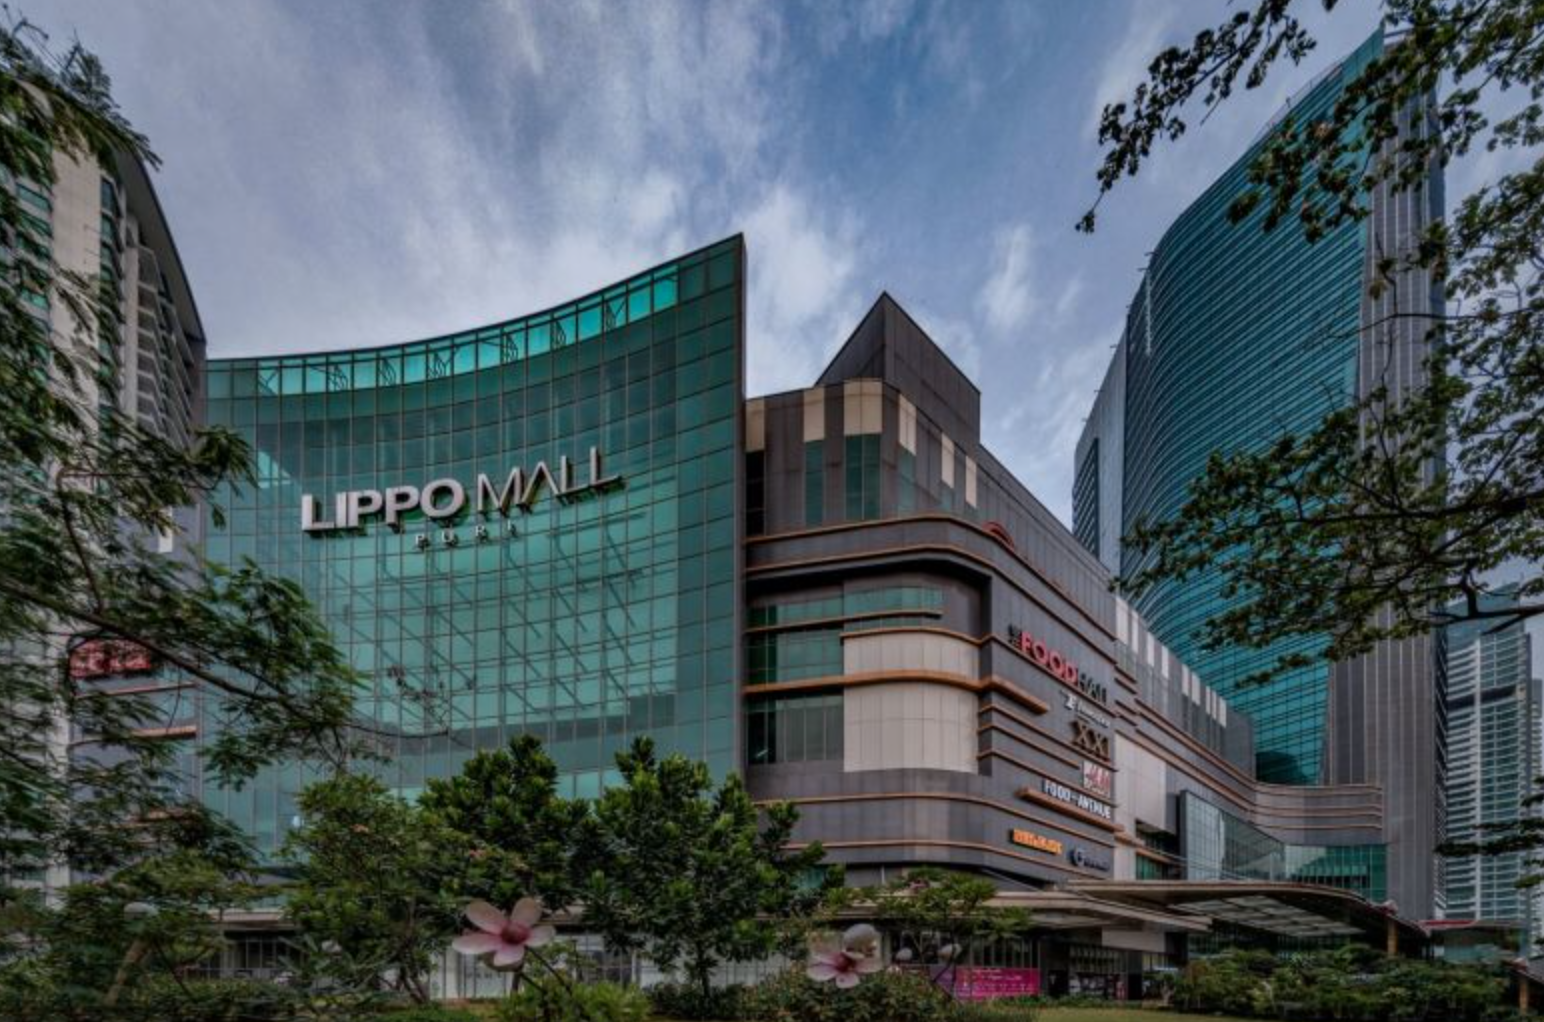 Lippo Malls Puri is currently owned by a subsidiary of Lippo Malls Indonesia Retail Trust's sponsor. (Photo: Lippo Malls Indonesia Retail Trust)